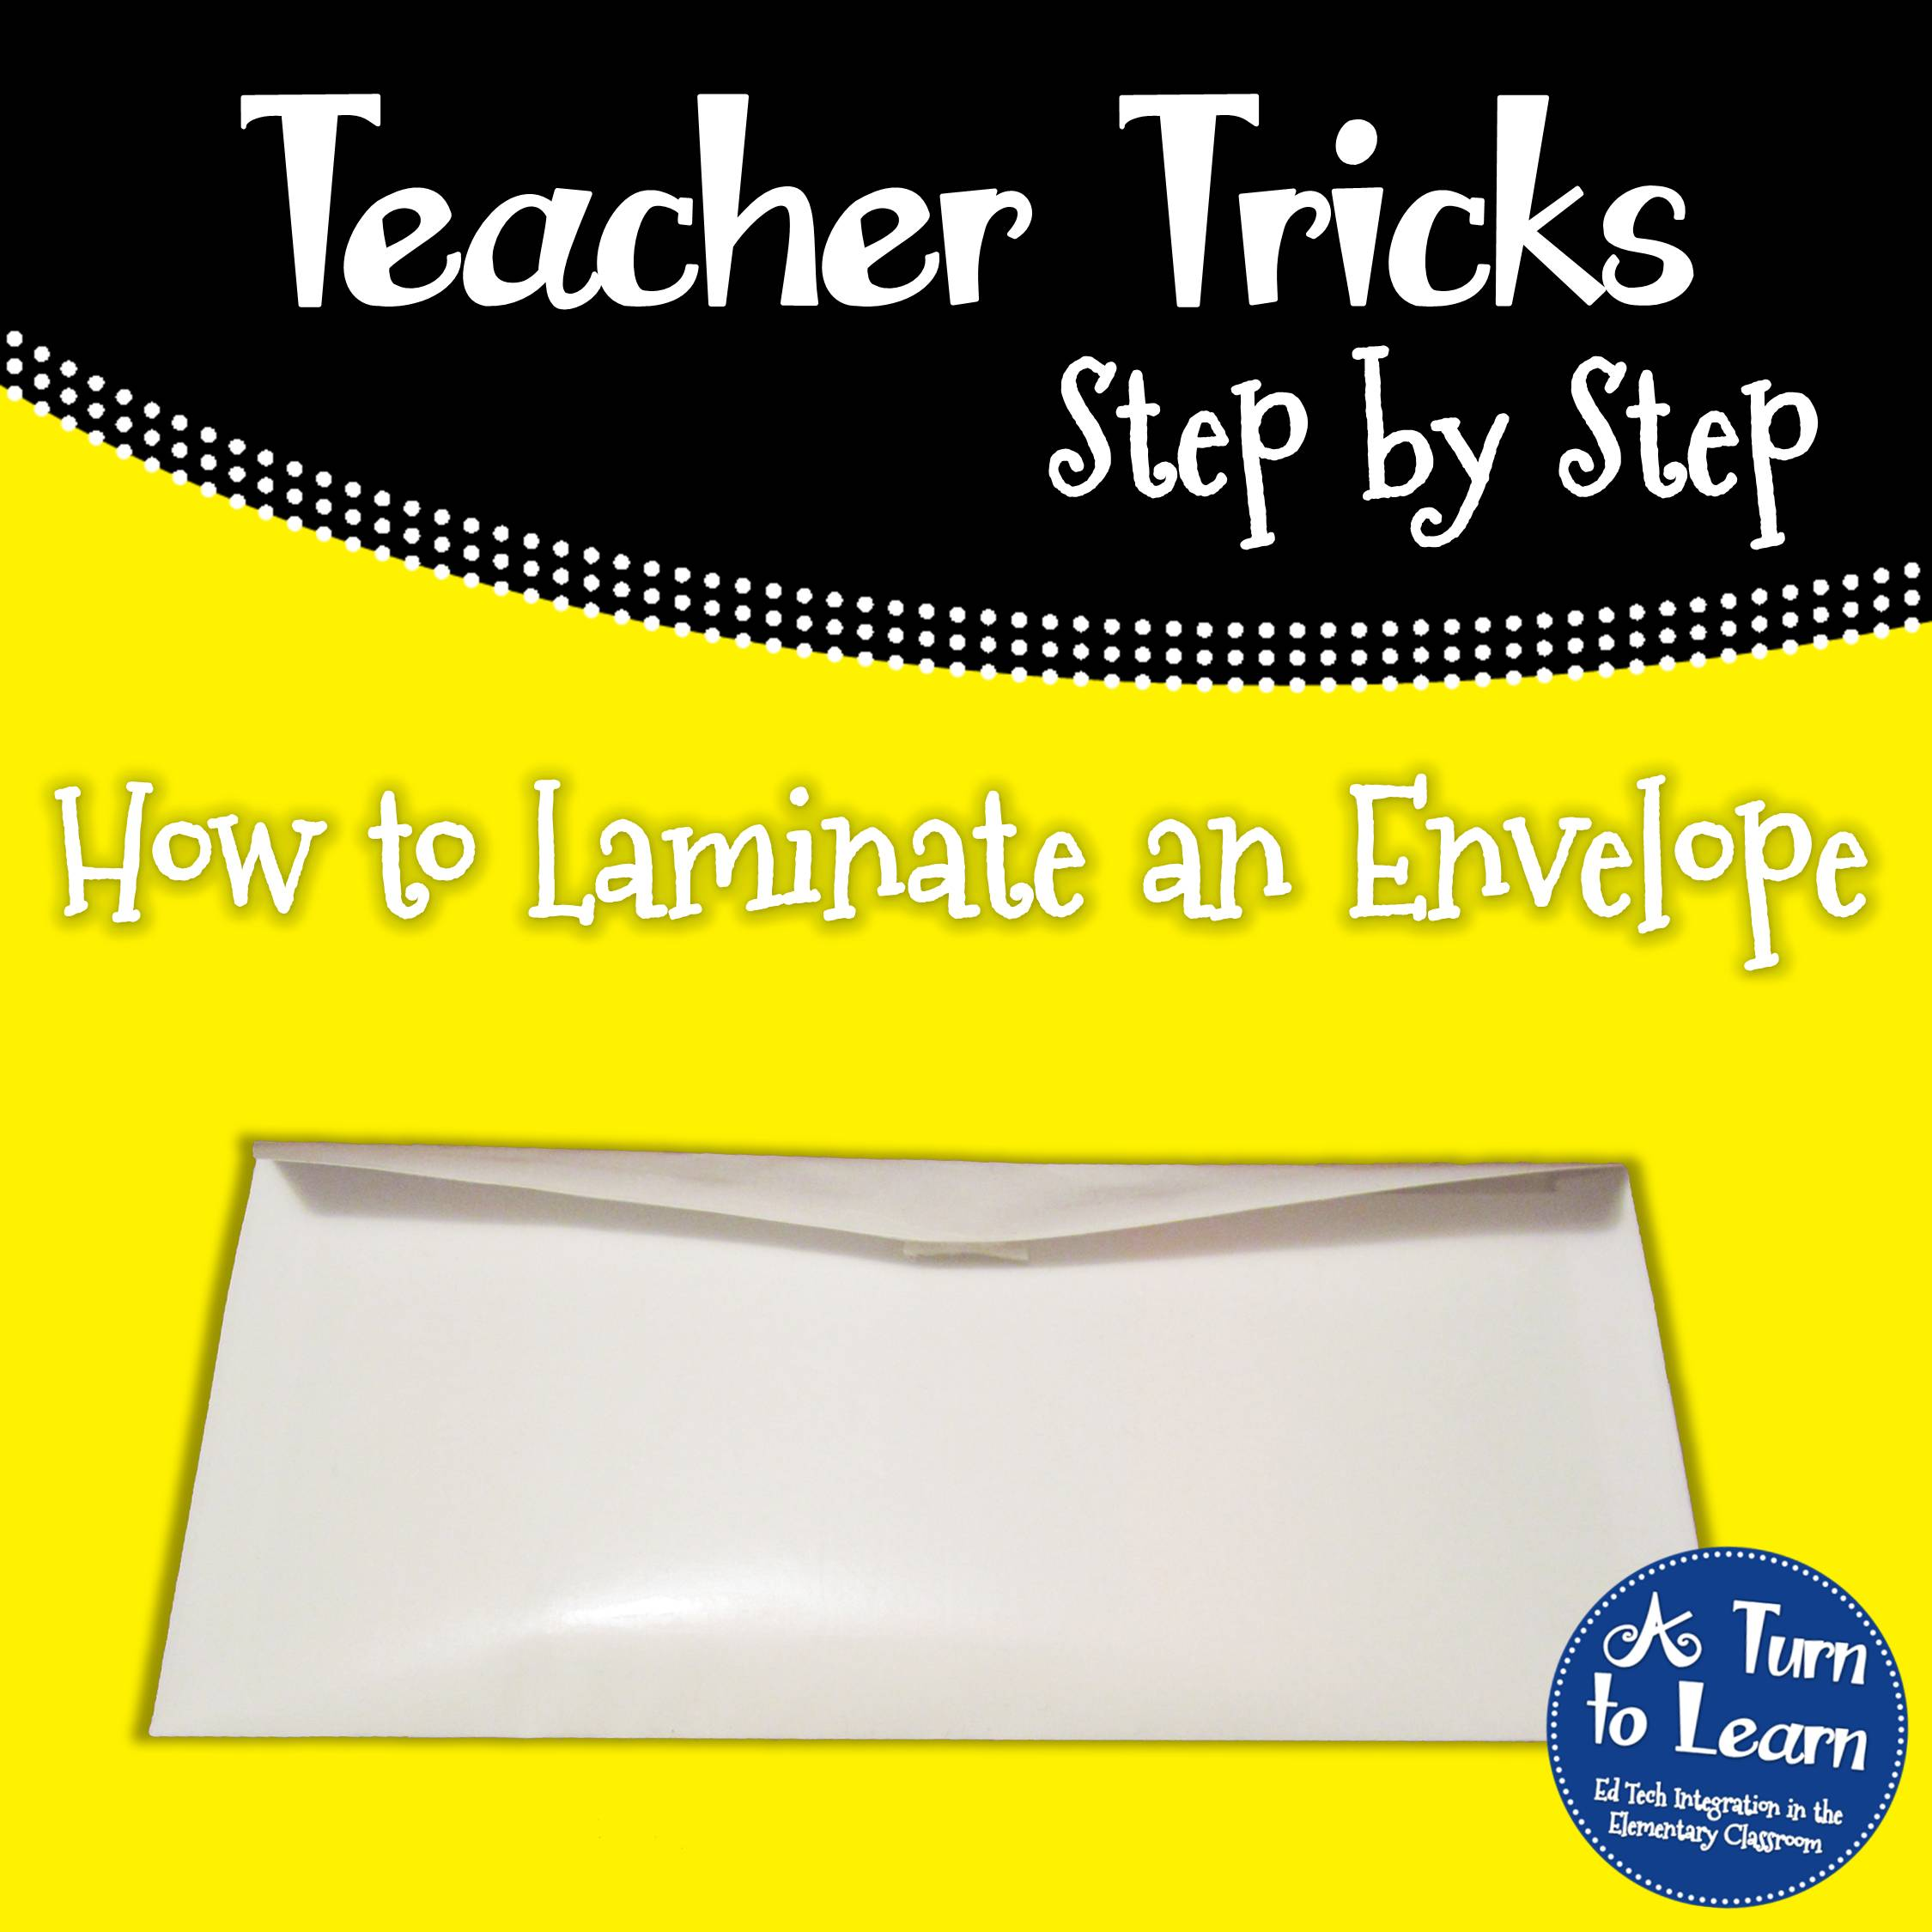 How to Laminate an Envelope